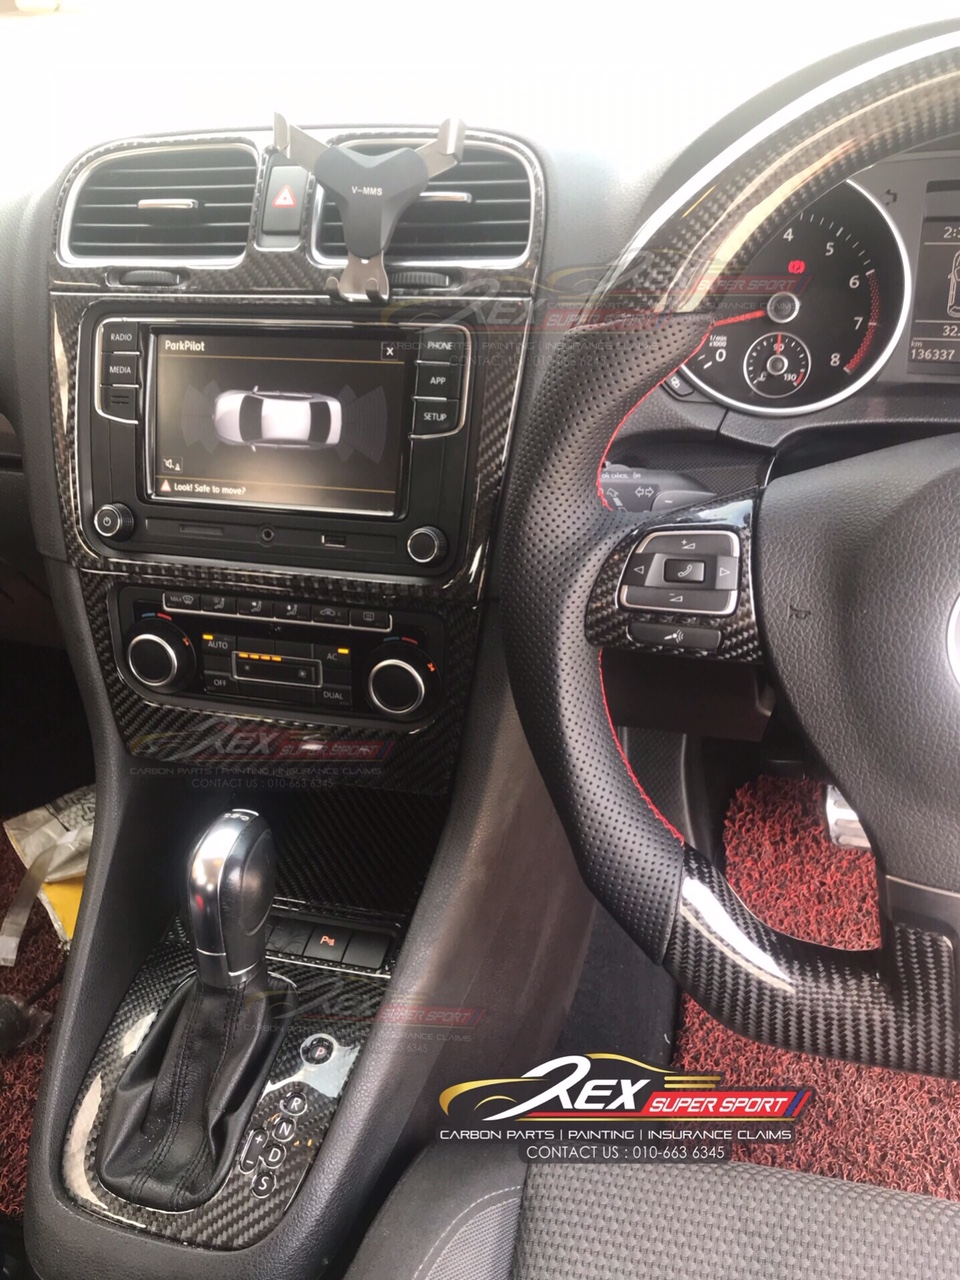 Golf Mk6 Carbon Interior Trim Set Rexsupersport Specializes In Providing Carbon Fibre Parts And Accessories